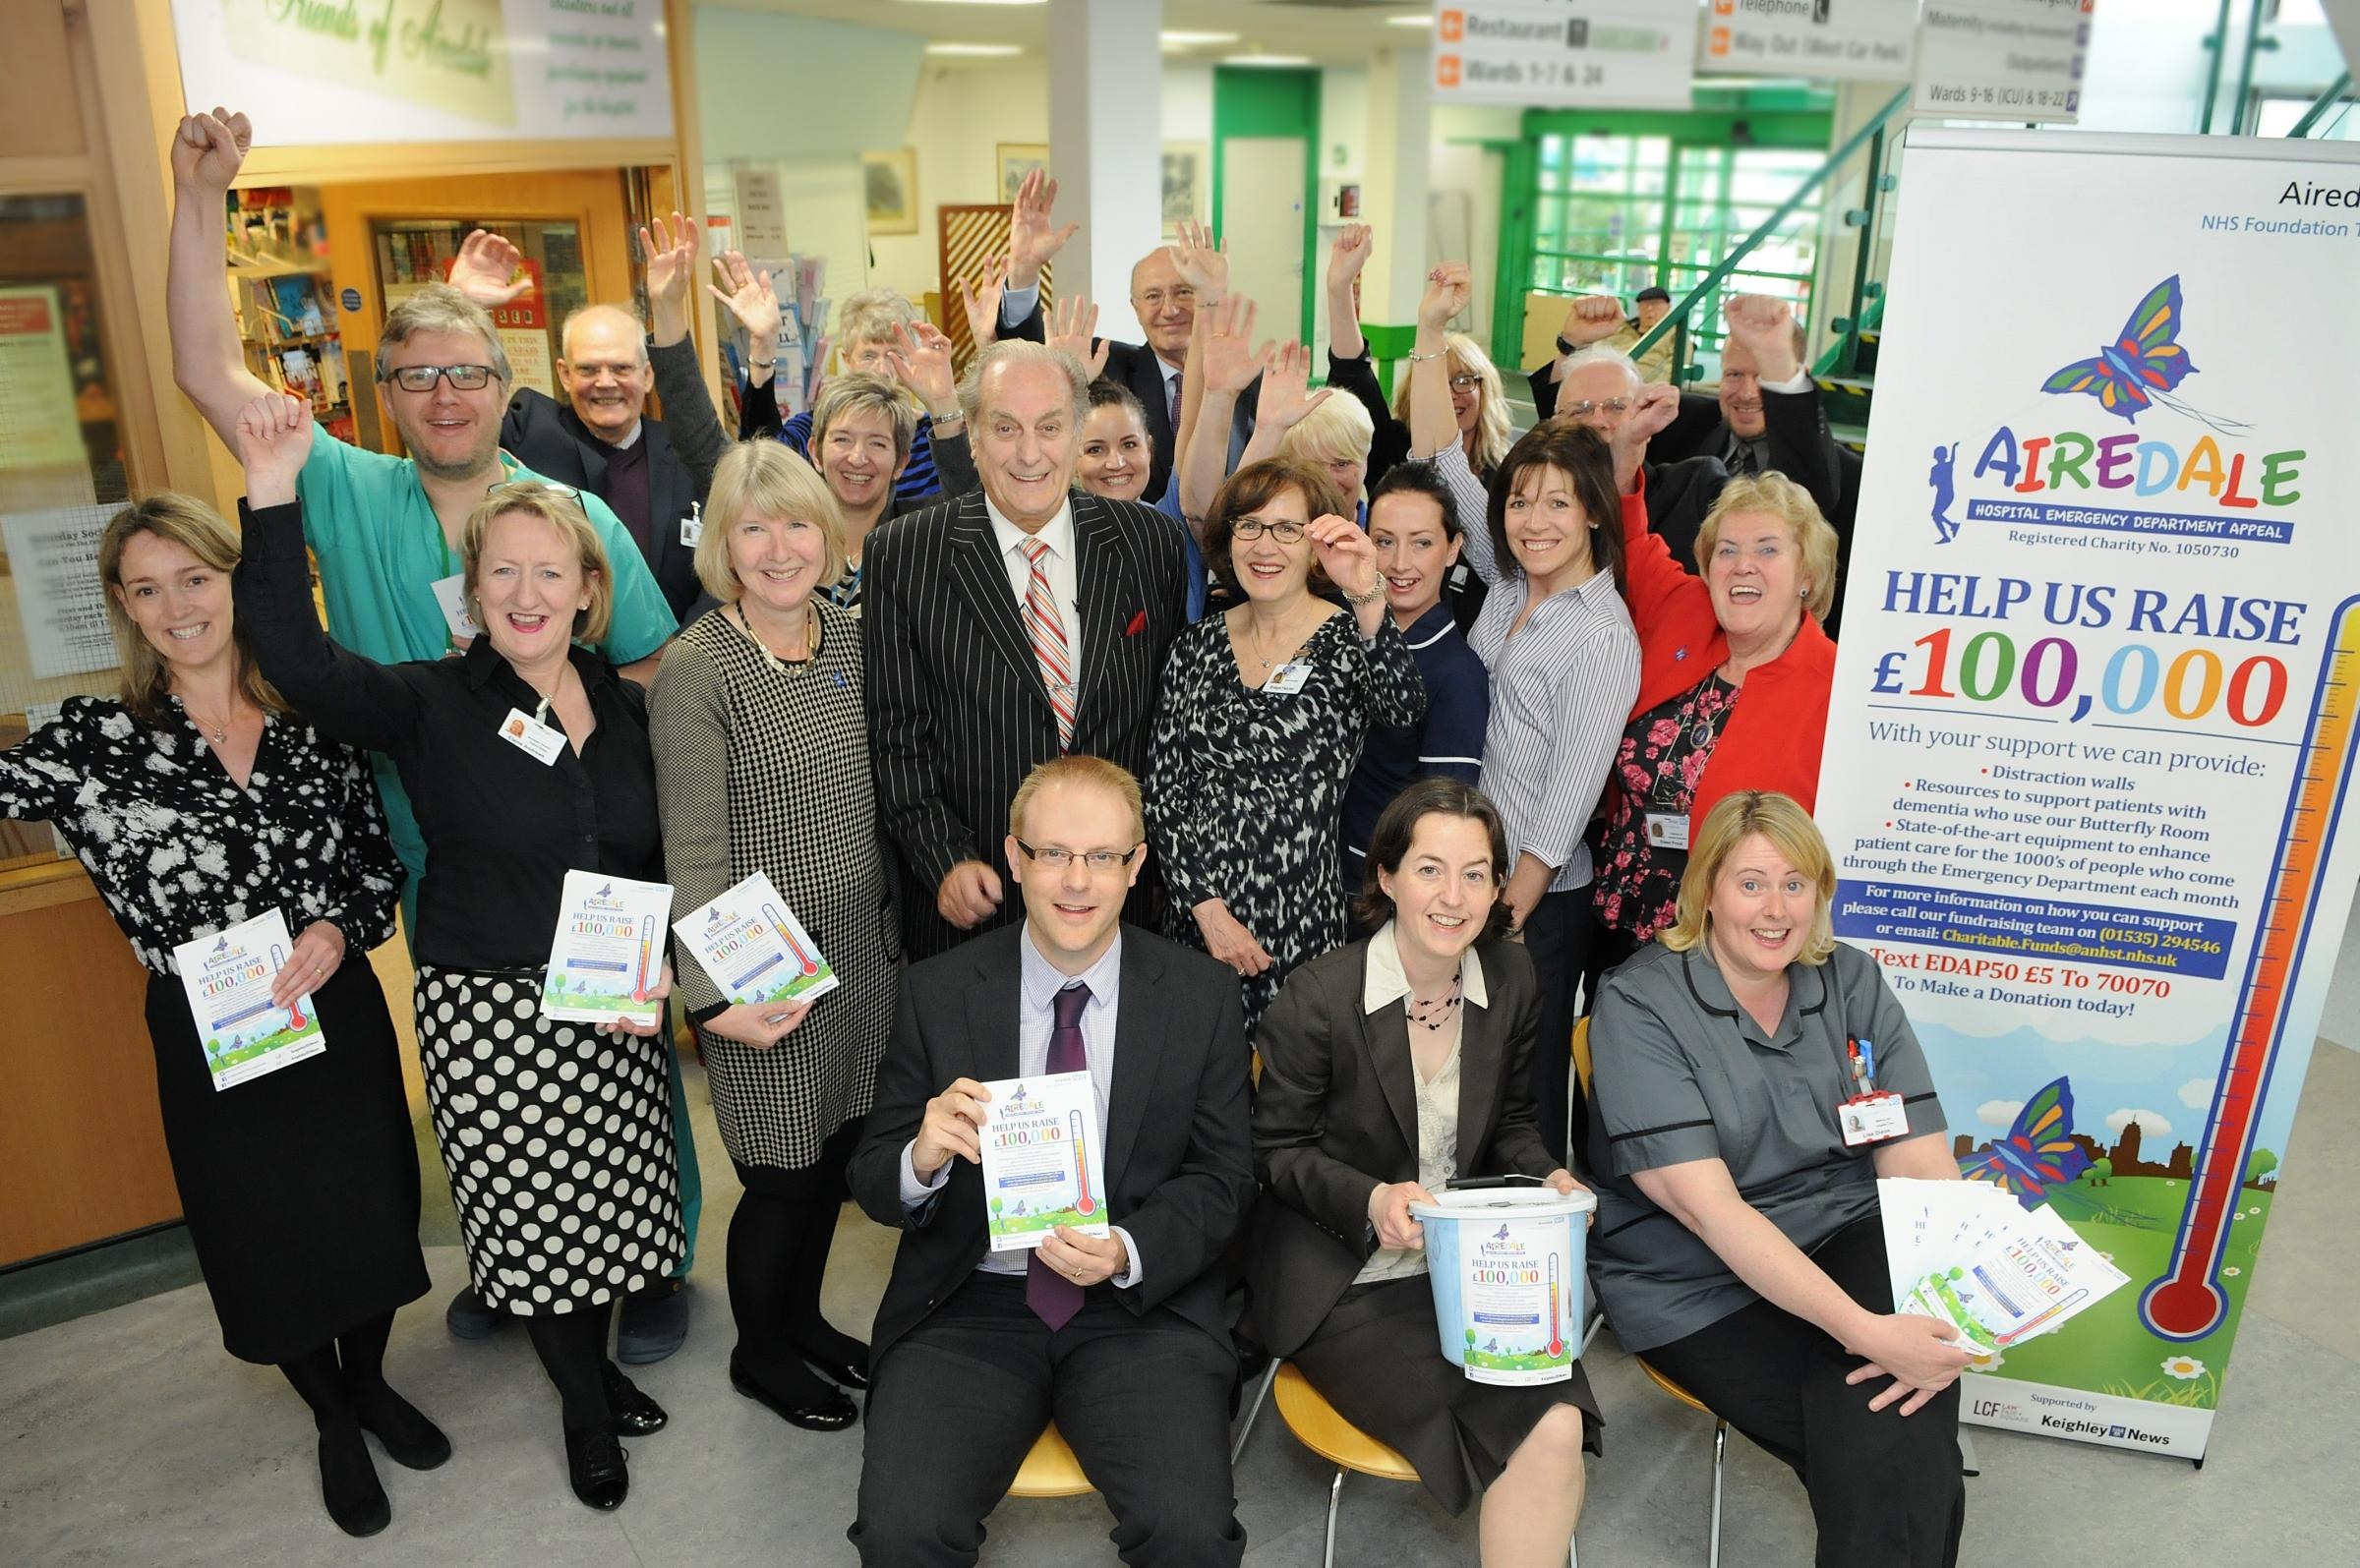 Supporters launching the appeal for £100,000 at Airedale Hospital